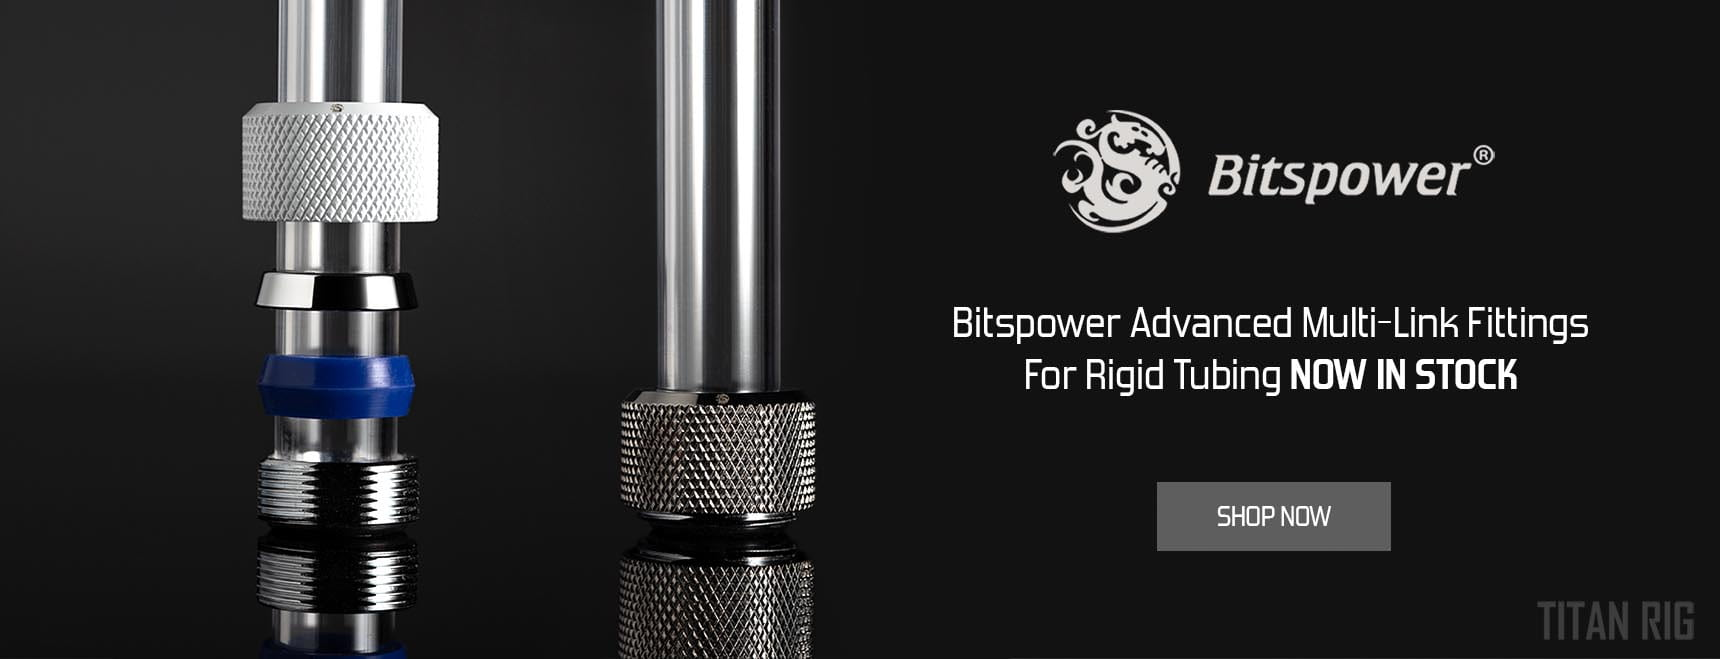 Bitspower advanced multi-link fittings for rigid tubing